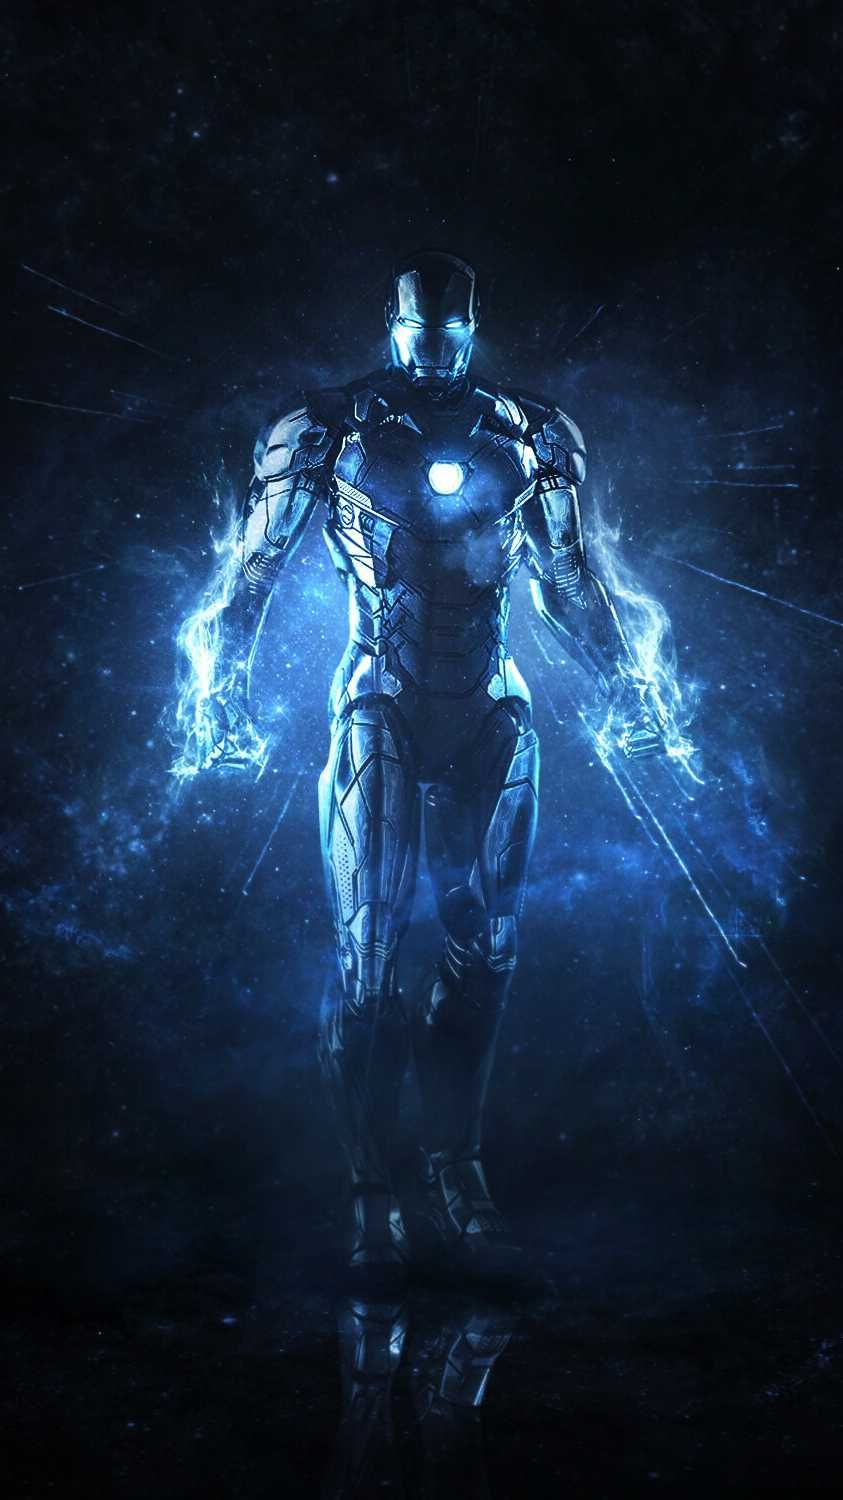 Iphone Wallpapers For Iphone 8 Iphone 8 Plus Iphone 6s Iphone 6s Plus Iphone X And Ipod Touch High Q Iron Man Avengers Marvel Wallpaper Marvel Wallpaper Hd